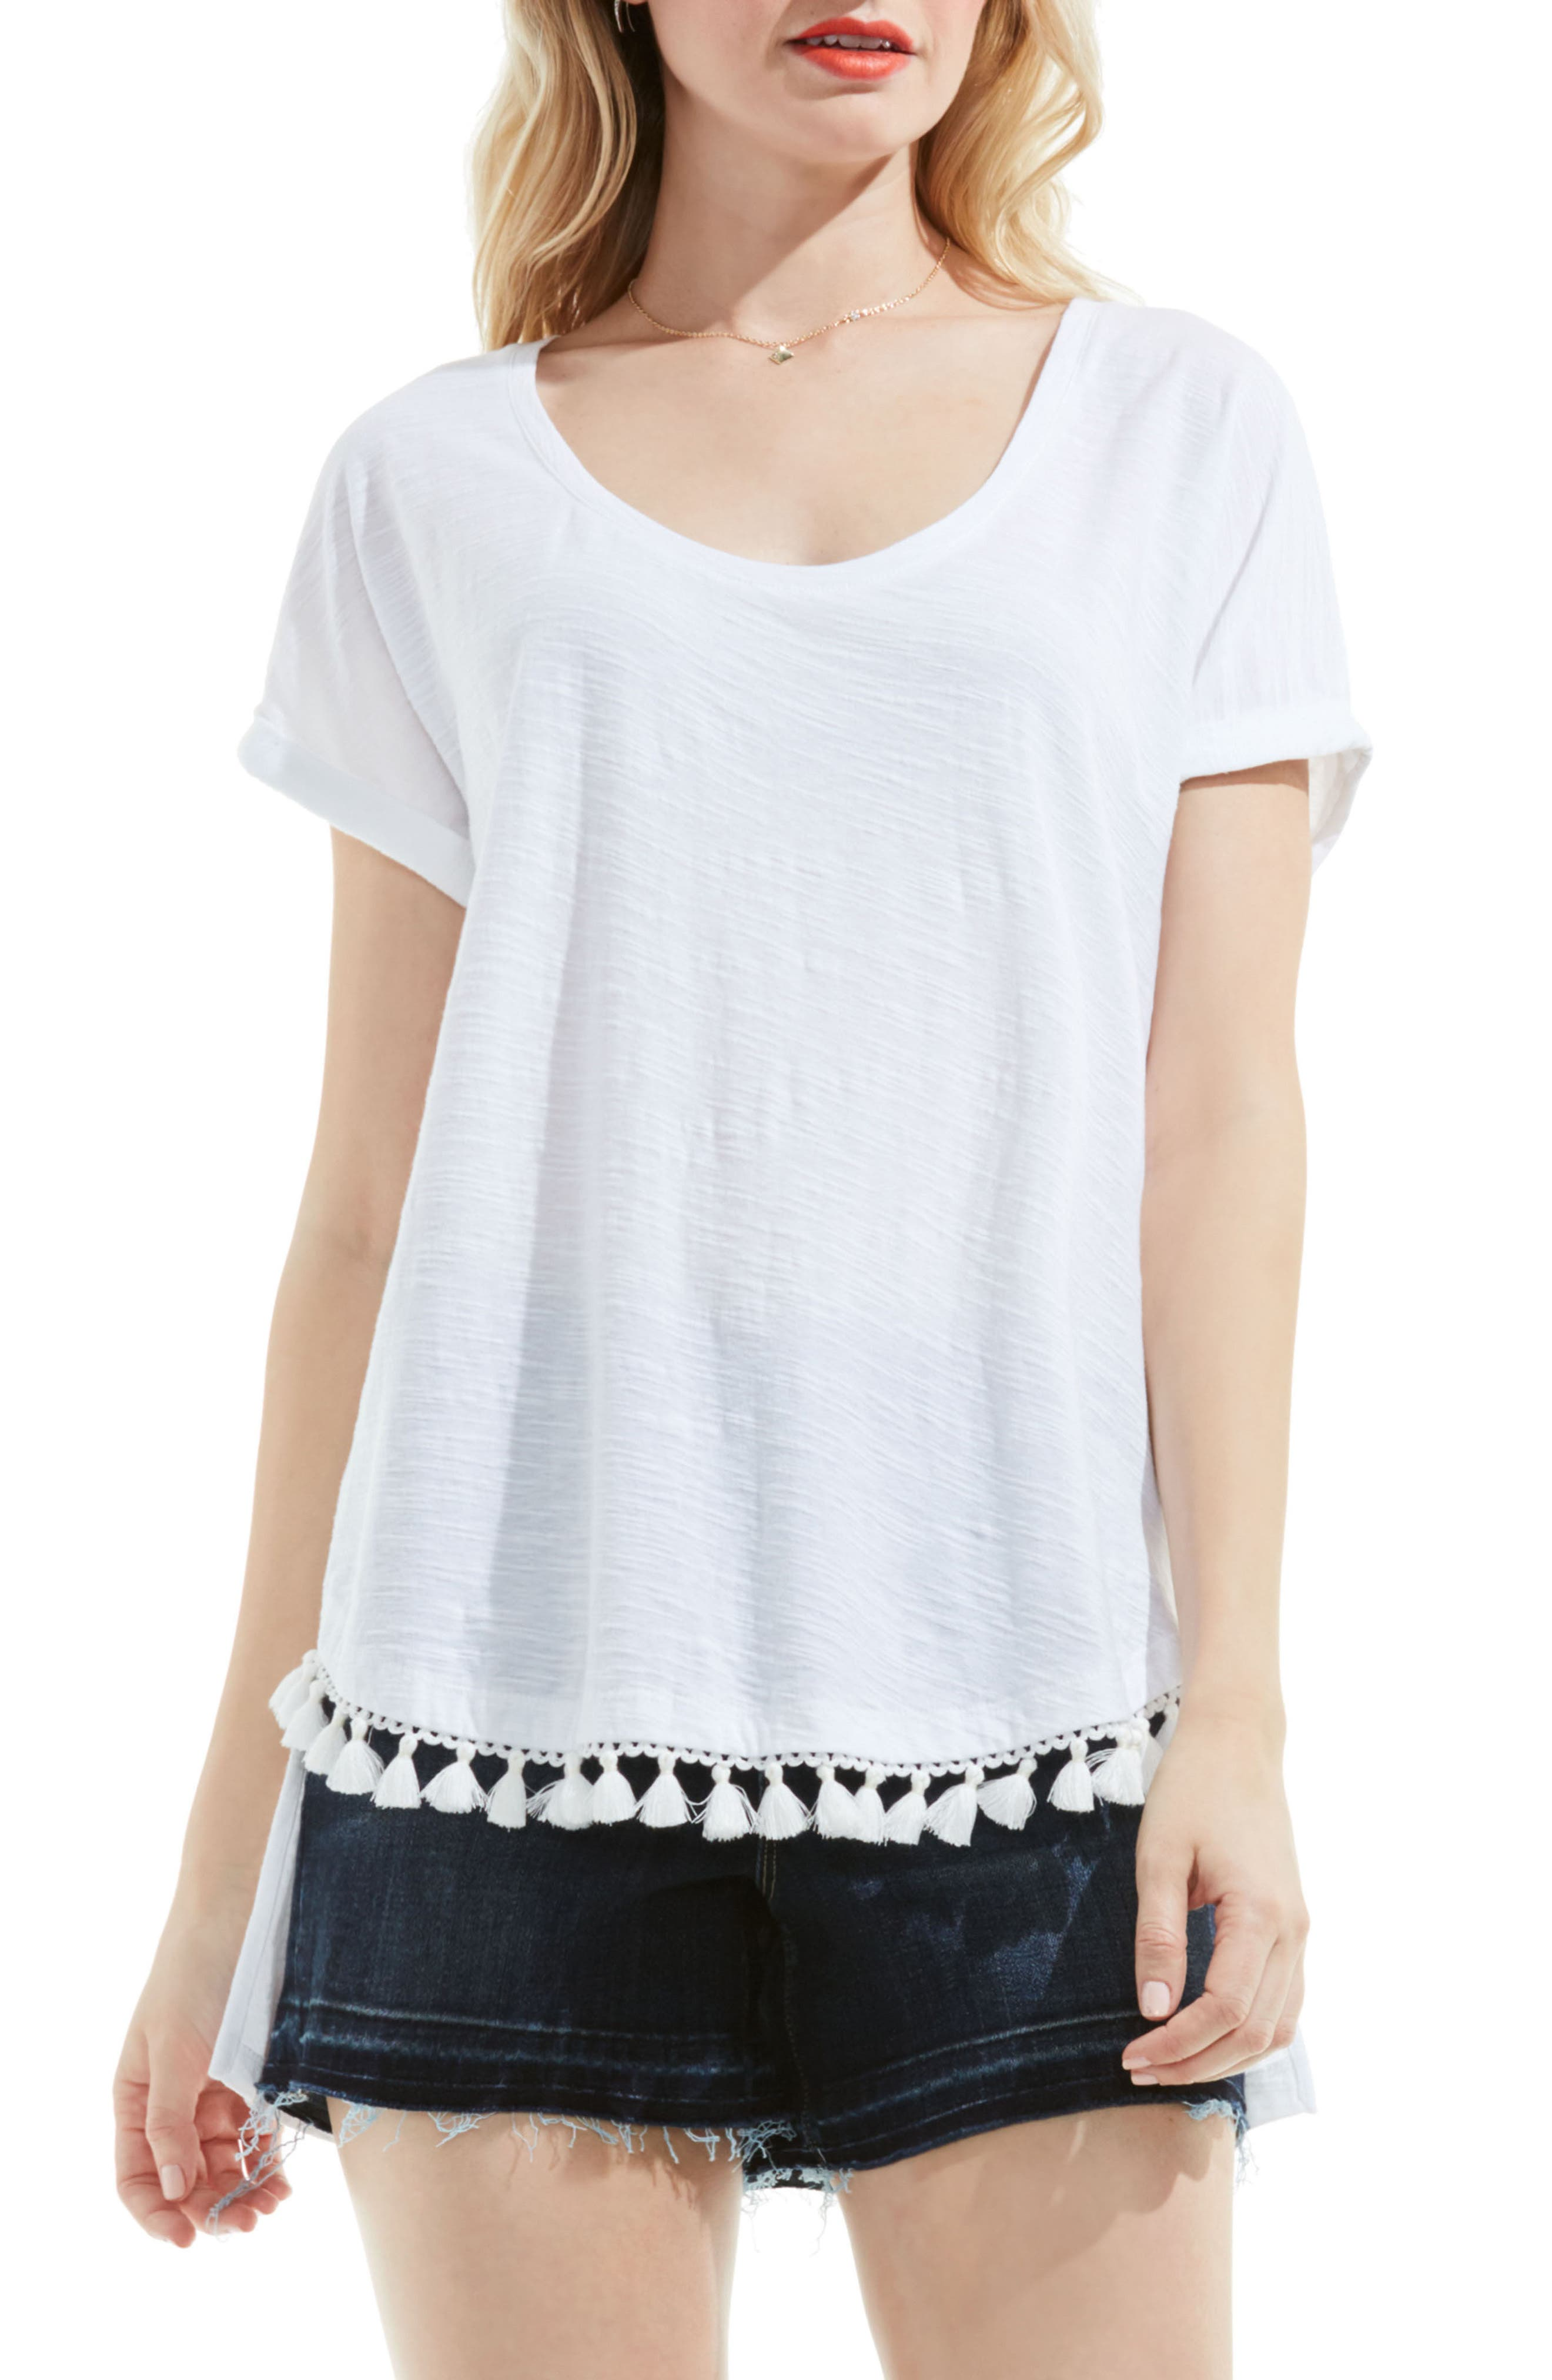 Main Image - Two by Vince Camuto Tassel Trim Cotton Tee